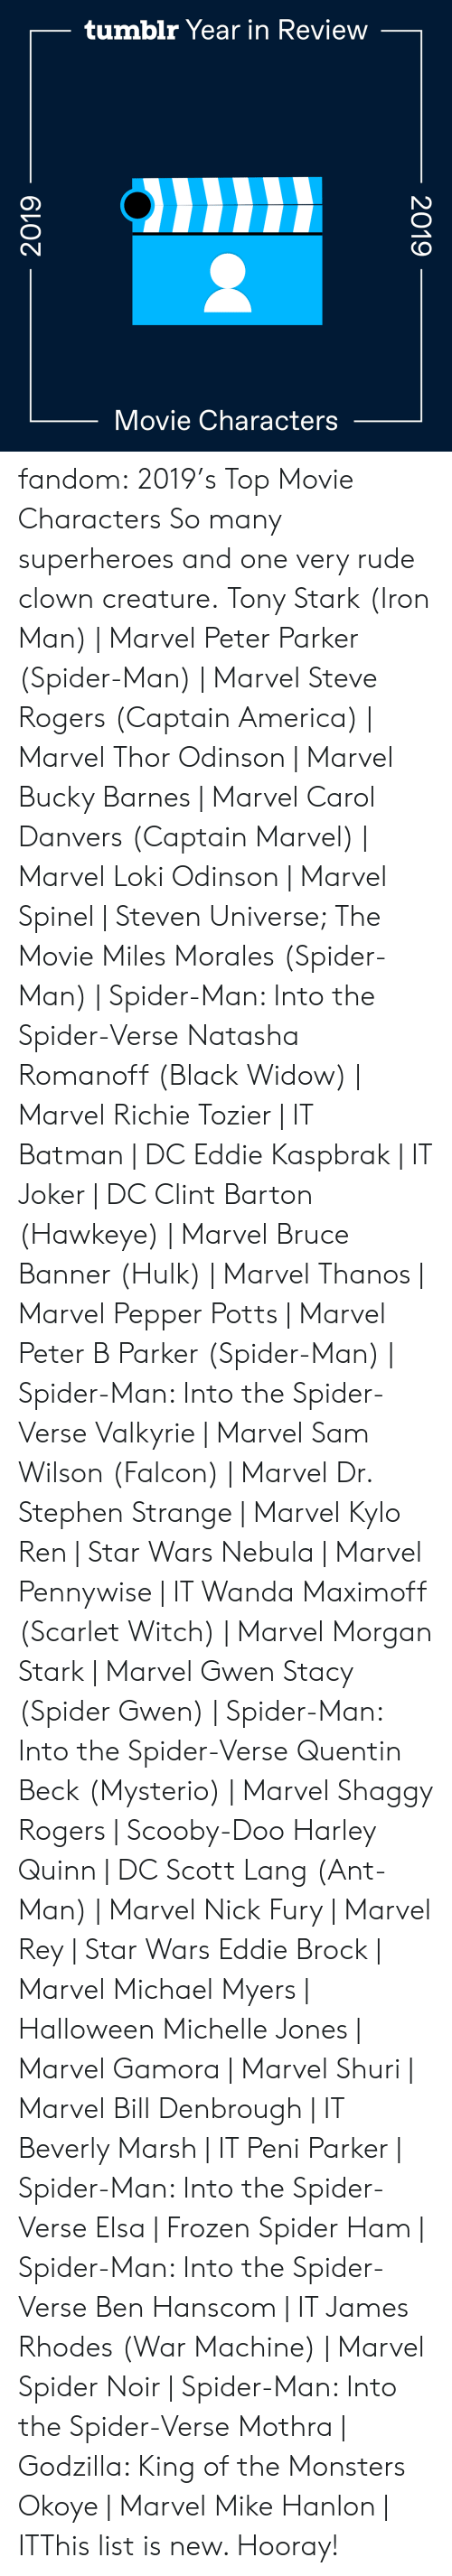 Marvel: tumblr Year in Review  Movie Characters  2019  2019 fandom:  2019's Top Movie Characters  So many superheroes and one very rude clown creature.  Tony Stark (Iron Man) | Marvel  Peter Parker (Spider-Man) | Marvel  Steve Rogers (Captain America) | Marvel  Thor Odinson | Marvel  Bucky Barnes | Marvel  Carol Danvers (Captain Marvel) | Marvel  Loki Odinson | Marvel  Spinel | Steven Universe; The Movie  Miles Morales (Spider-Man) | Spider-Man: Into the Spider-Verse  Natasha Romanoff (Black Widow) | Marvel  Richie Tozier | IT  Batman | DC  Eddie Kaspbrak | IT  Joker | DC  Clint Barton (Hawkeye) | Marvel  Bruce Banner (Hulk) | Marvel  Thanos | Marvel  Pepper Potts | Marvel  Peter B Parker (Spider-Man) | Spider-Man: Into the Spider-Verse  Valkyrie | Marvel  Sam Wilson (Falcon) | Marvel  Dr. Stephen Strange | Marvel  Kylo Ren | Star Wars  Nebula | Marvel  Pennywise | IT  Wanda Maximoff (Scarlet Witch) | Marvel  Morgan Stark | Marvel  Gwen Stacy (Spider Gwen) | Spider-Man: Into the Spider-Verse  Quentin Beck (Mysterio) | Marvel  Shaggy Rogers | Scooby-Doo  Harley Quinn | DC  Scott Lang (Ant-Man) | Marvel  Nick Fury | Marvel  Rey | Star Wars  Eddie Brock | Marvel  Michael Myers | Halloween  Michelle Jones | Marvel  Gamora | Marvel  Shuri | Marvel  Bill Denbrough | IT  Beverly Marsh | IT  Peni Parker | Spider-Man: Into the Spider-Verse  Elsa | Frozen  Spider Ham | Spider-Man: Into the Spider-Verse  Ben Hanscom | IT  James Rhodes (War Machine) | Marvel  Spider Noir | Spider-Man: Into the Spider-Verse  Mothra | Godzilla: King of the Monsters  Okoye | Marvel Mike Hanlon | ITThis list is new. Hooray!